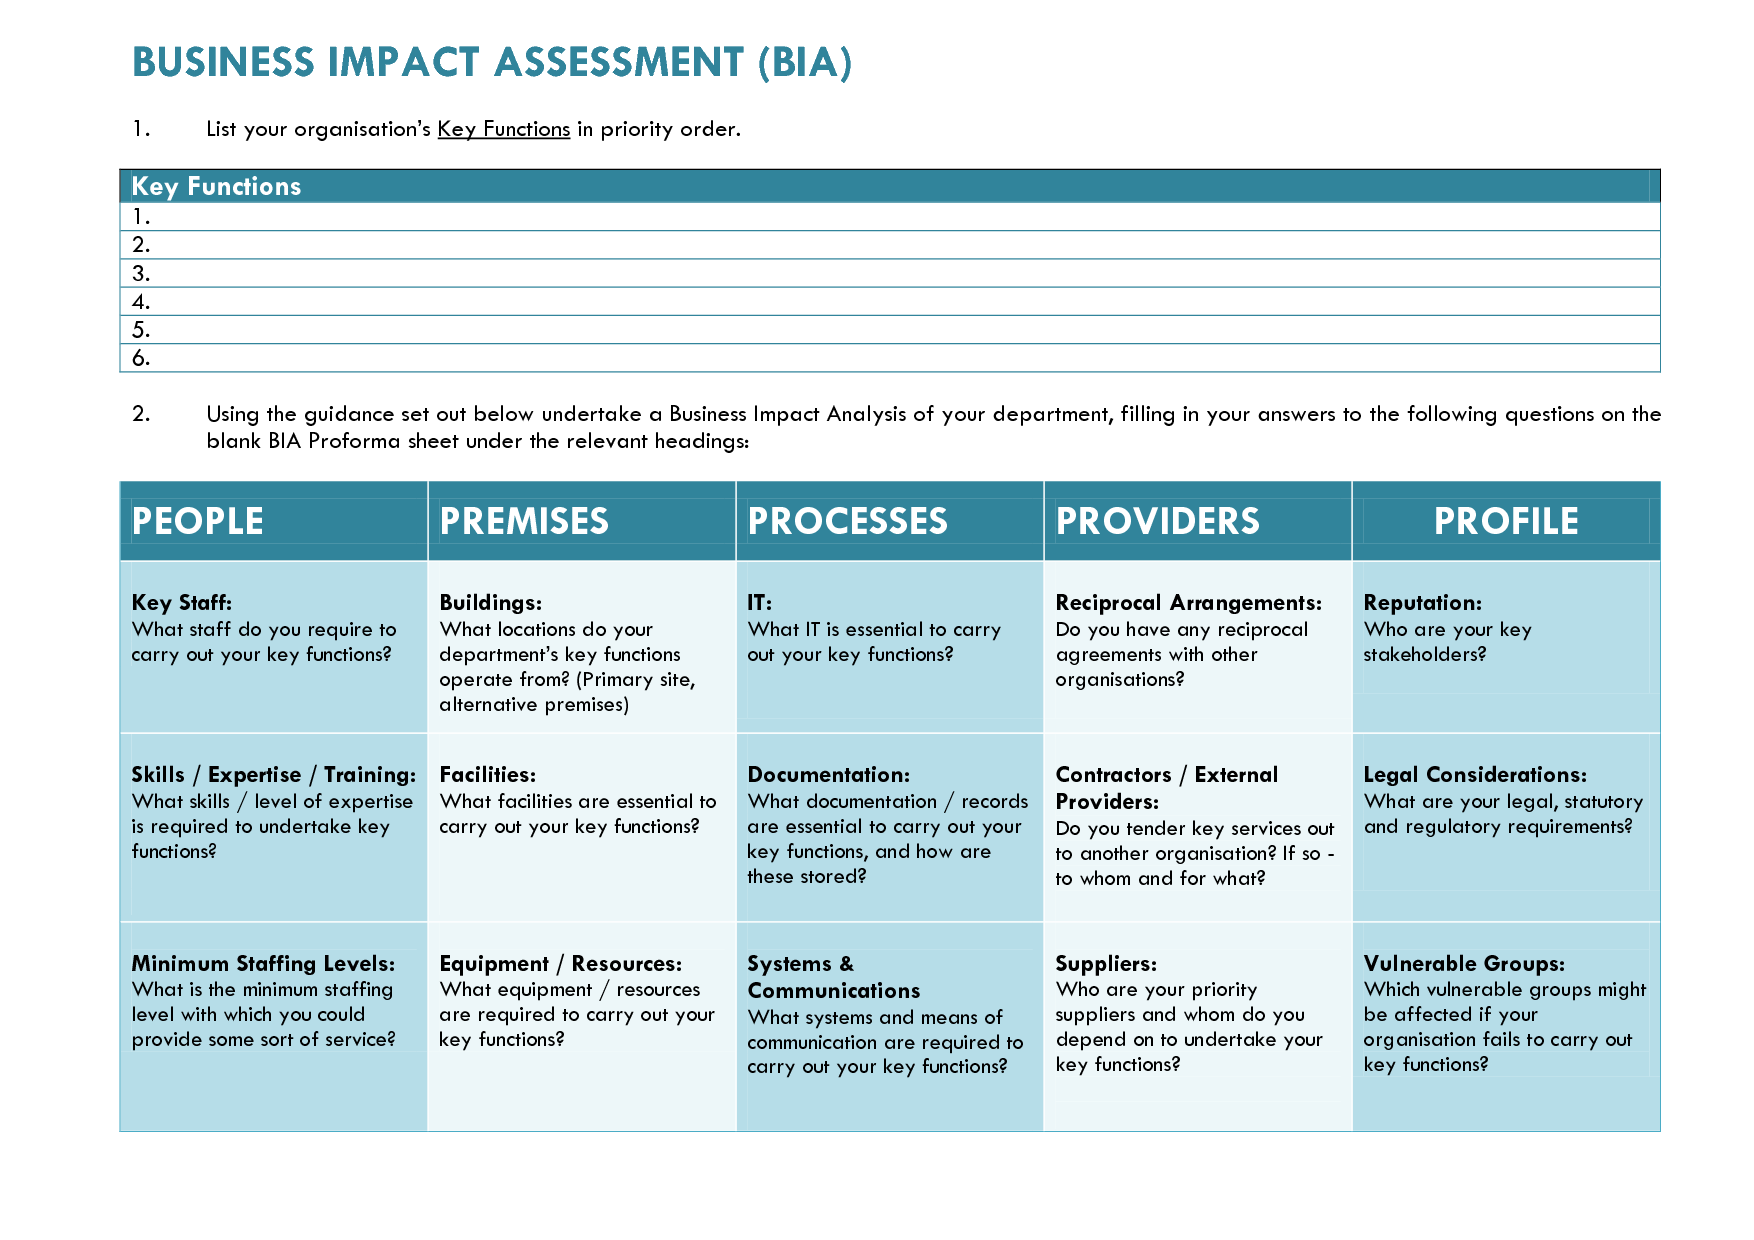 28 Images of Change Impact Assessment Template | dotcomstand.com